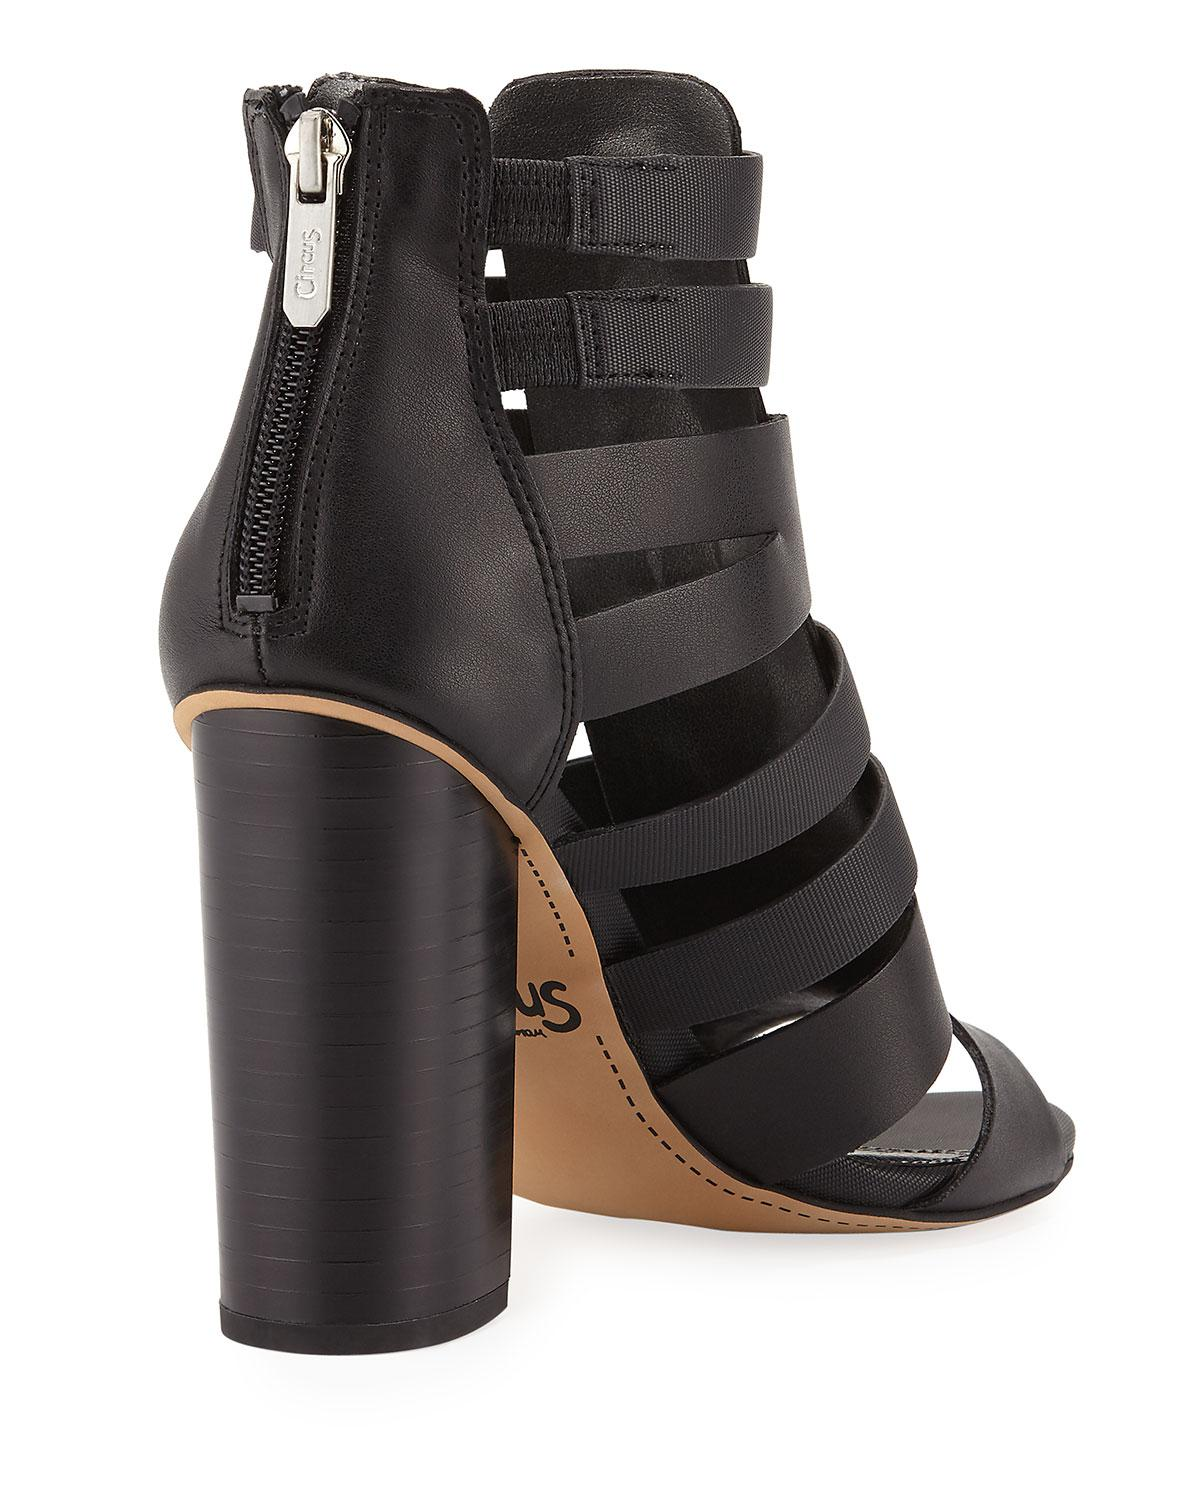 6aba3d180b0e2 Lyst - Circus by Sam Edelman York Cutout Zip-up Gladiator Bootie in ...